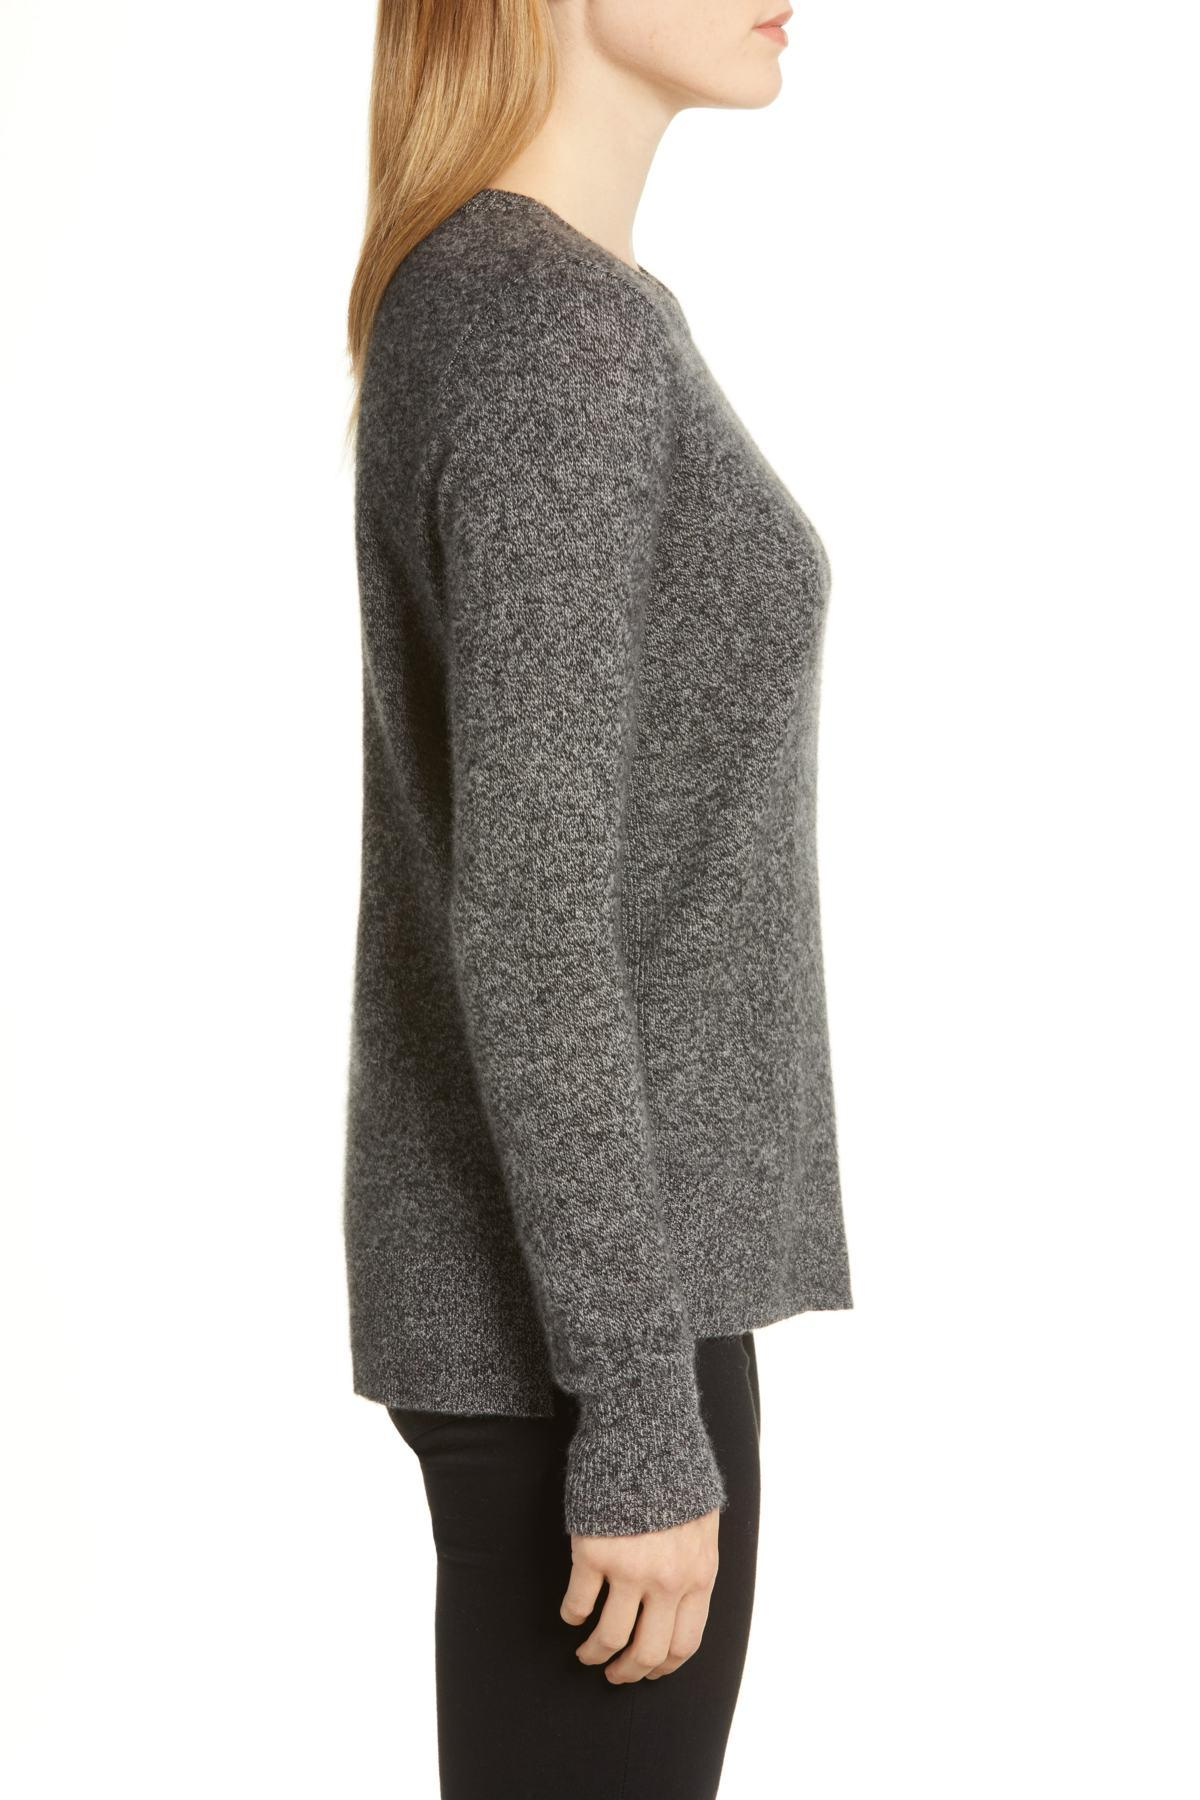 d006a4ab0 Lyst - Halogen (r) Crewneck Cashmere Sweater (regular   Petite) in Gray